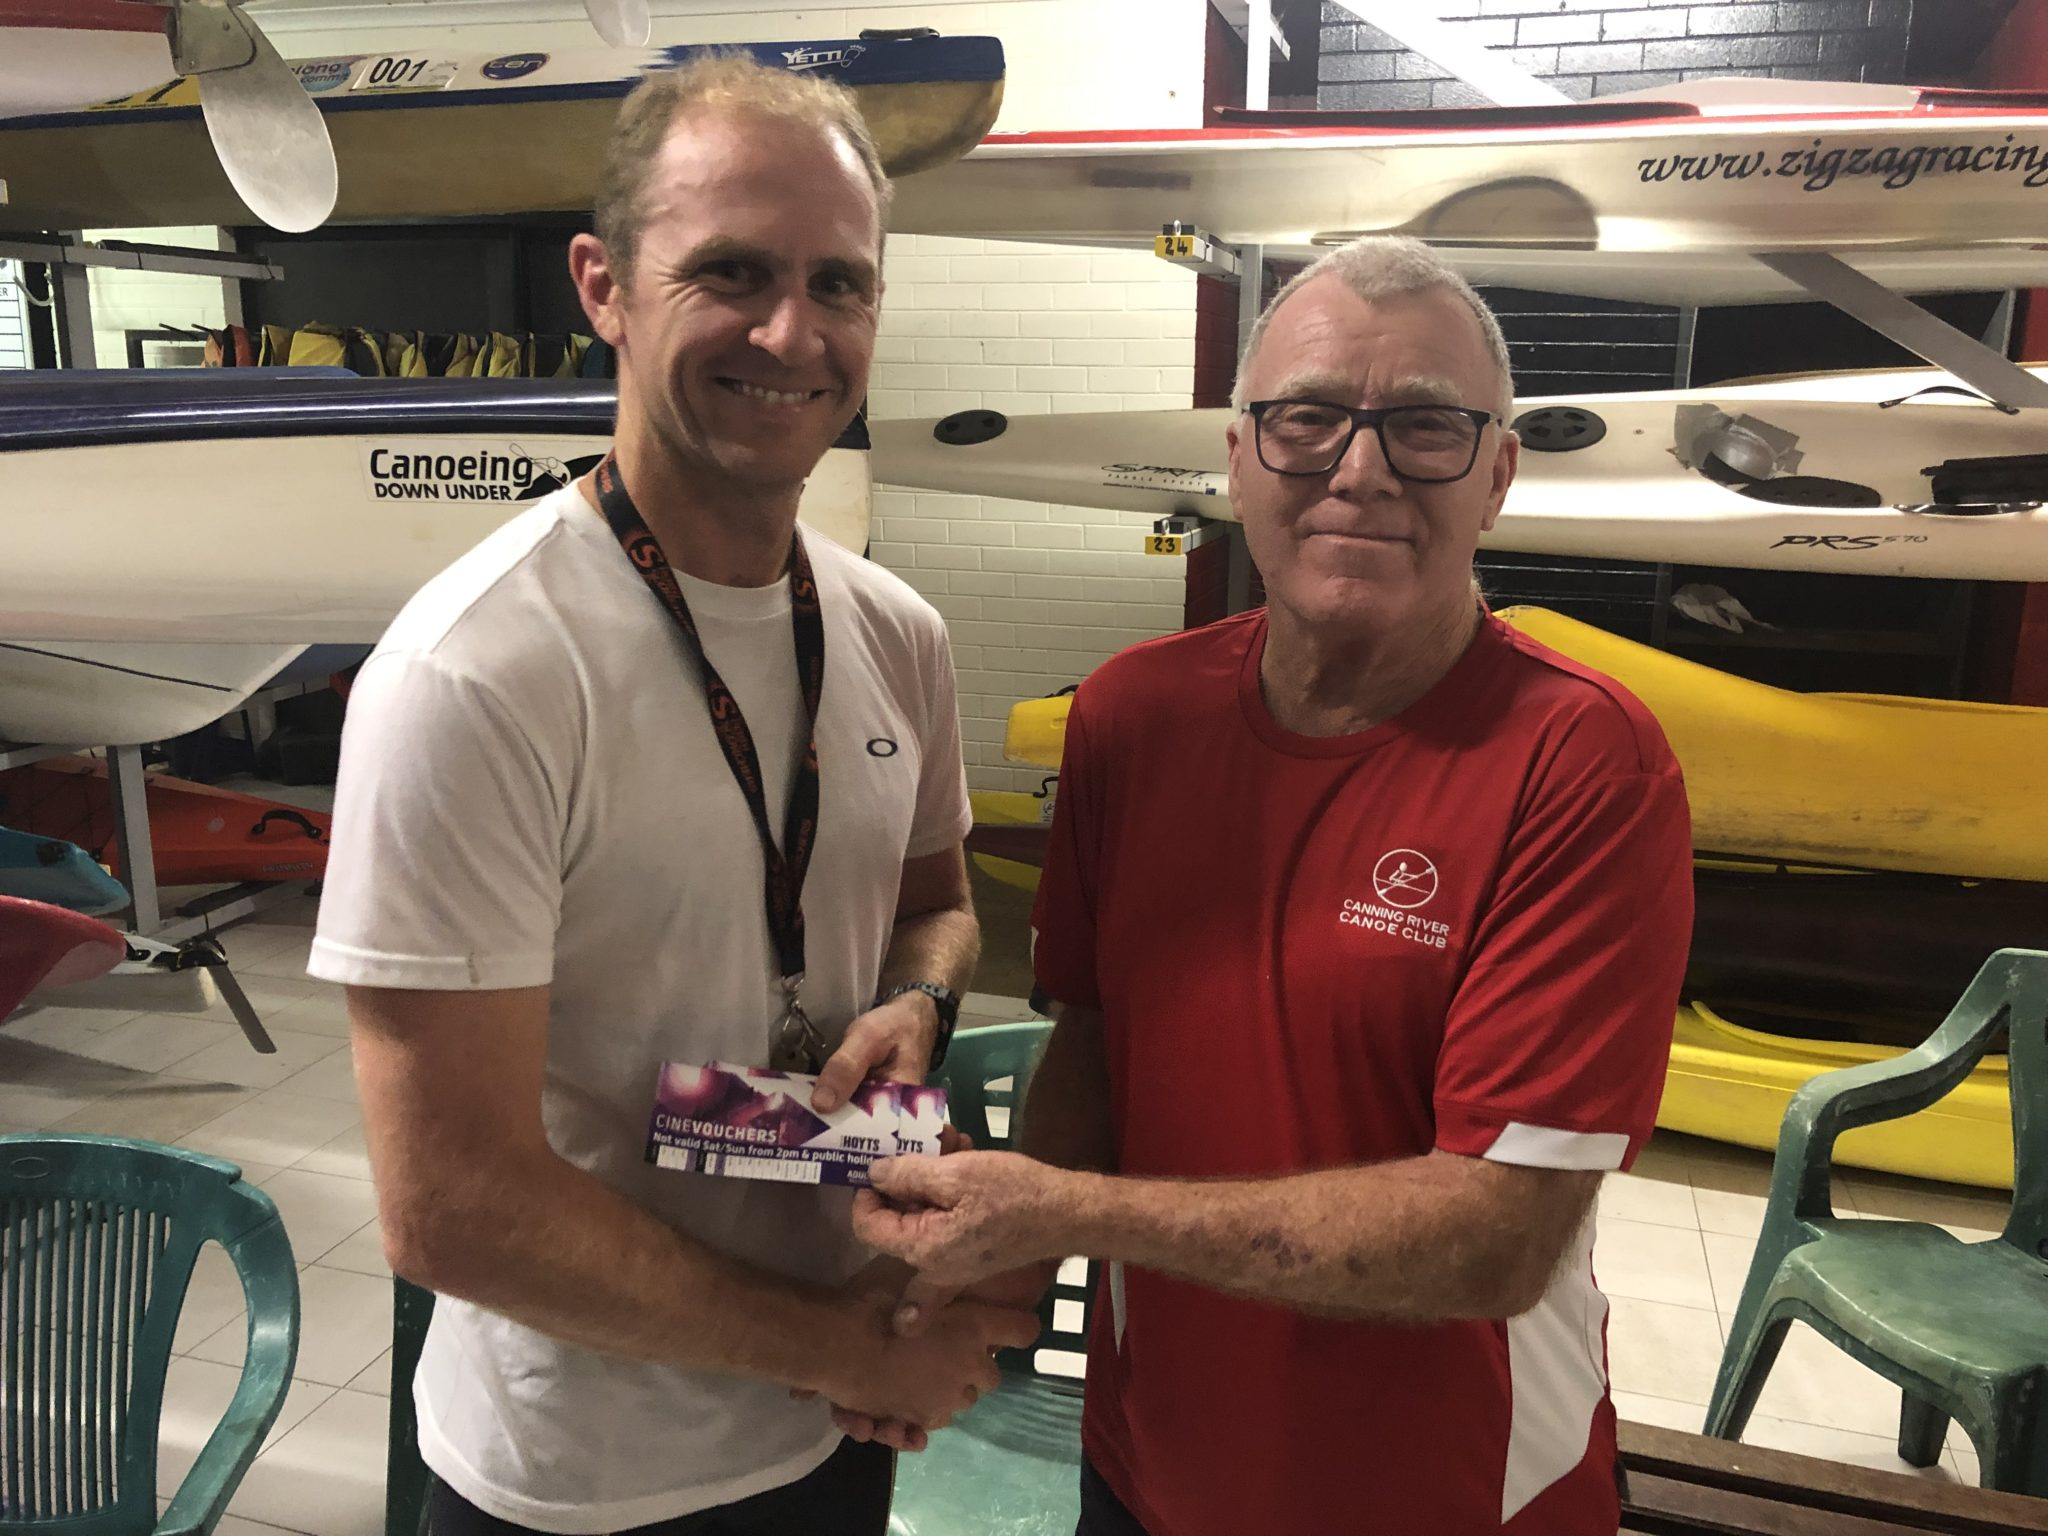 Tuesday 12th February 2019 : Tonight's photo shows club member Les presenting Mike Laloli with the winners movie voucher.